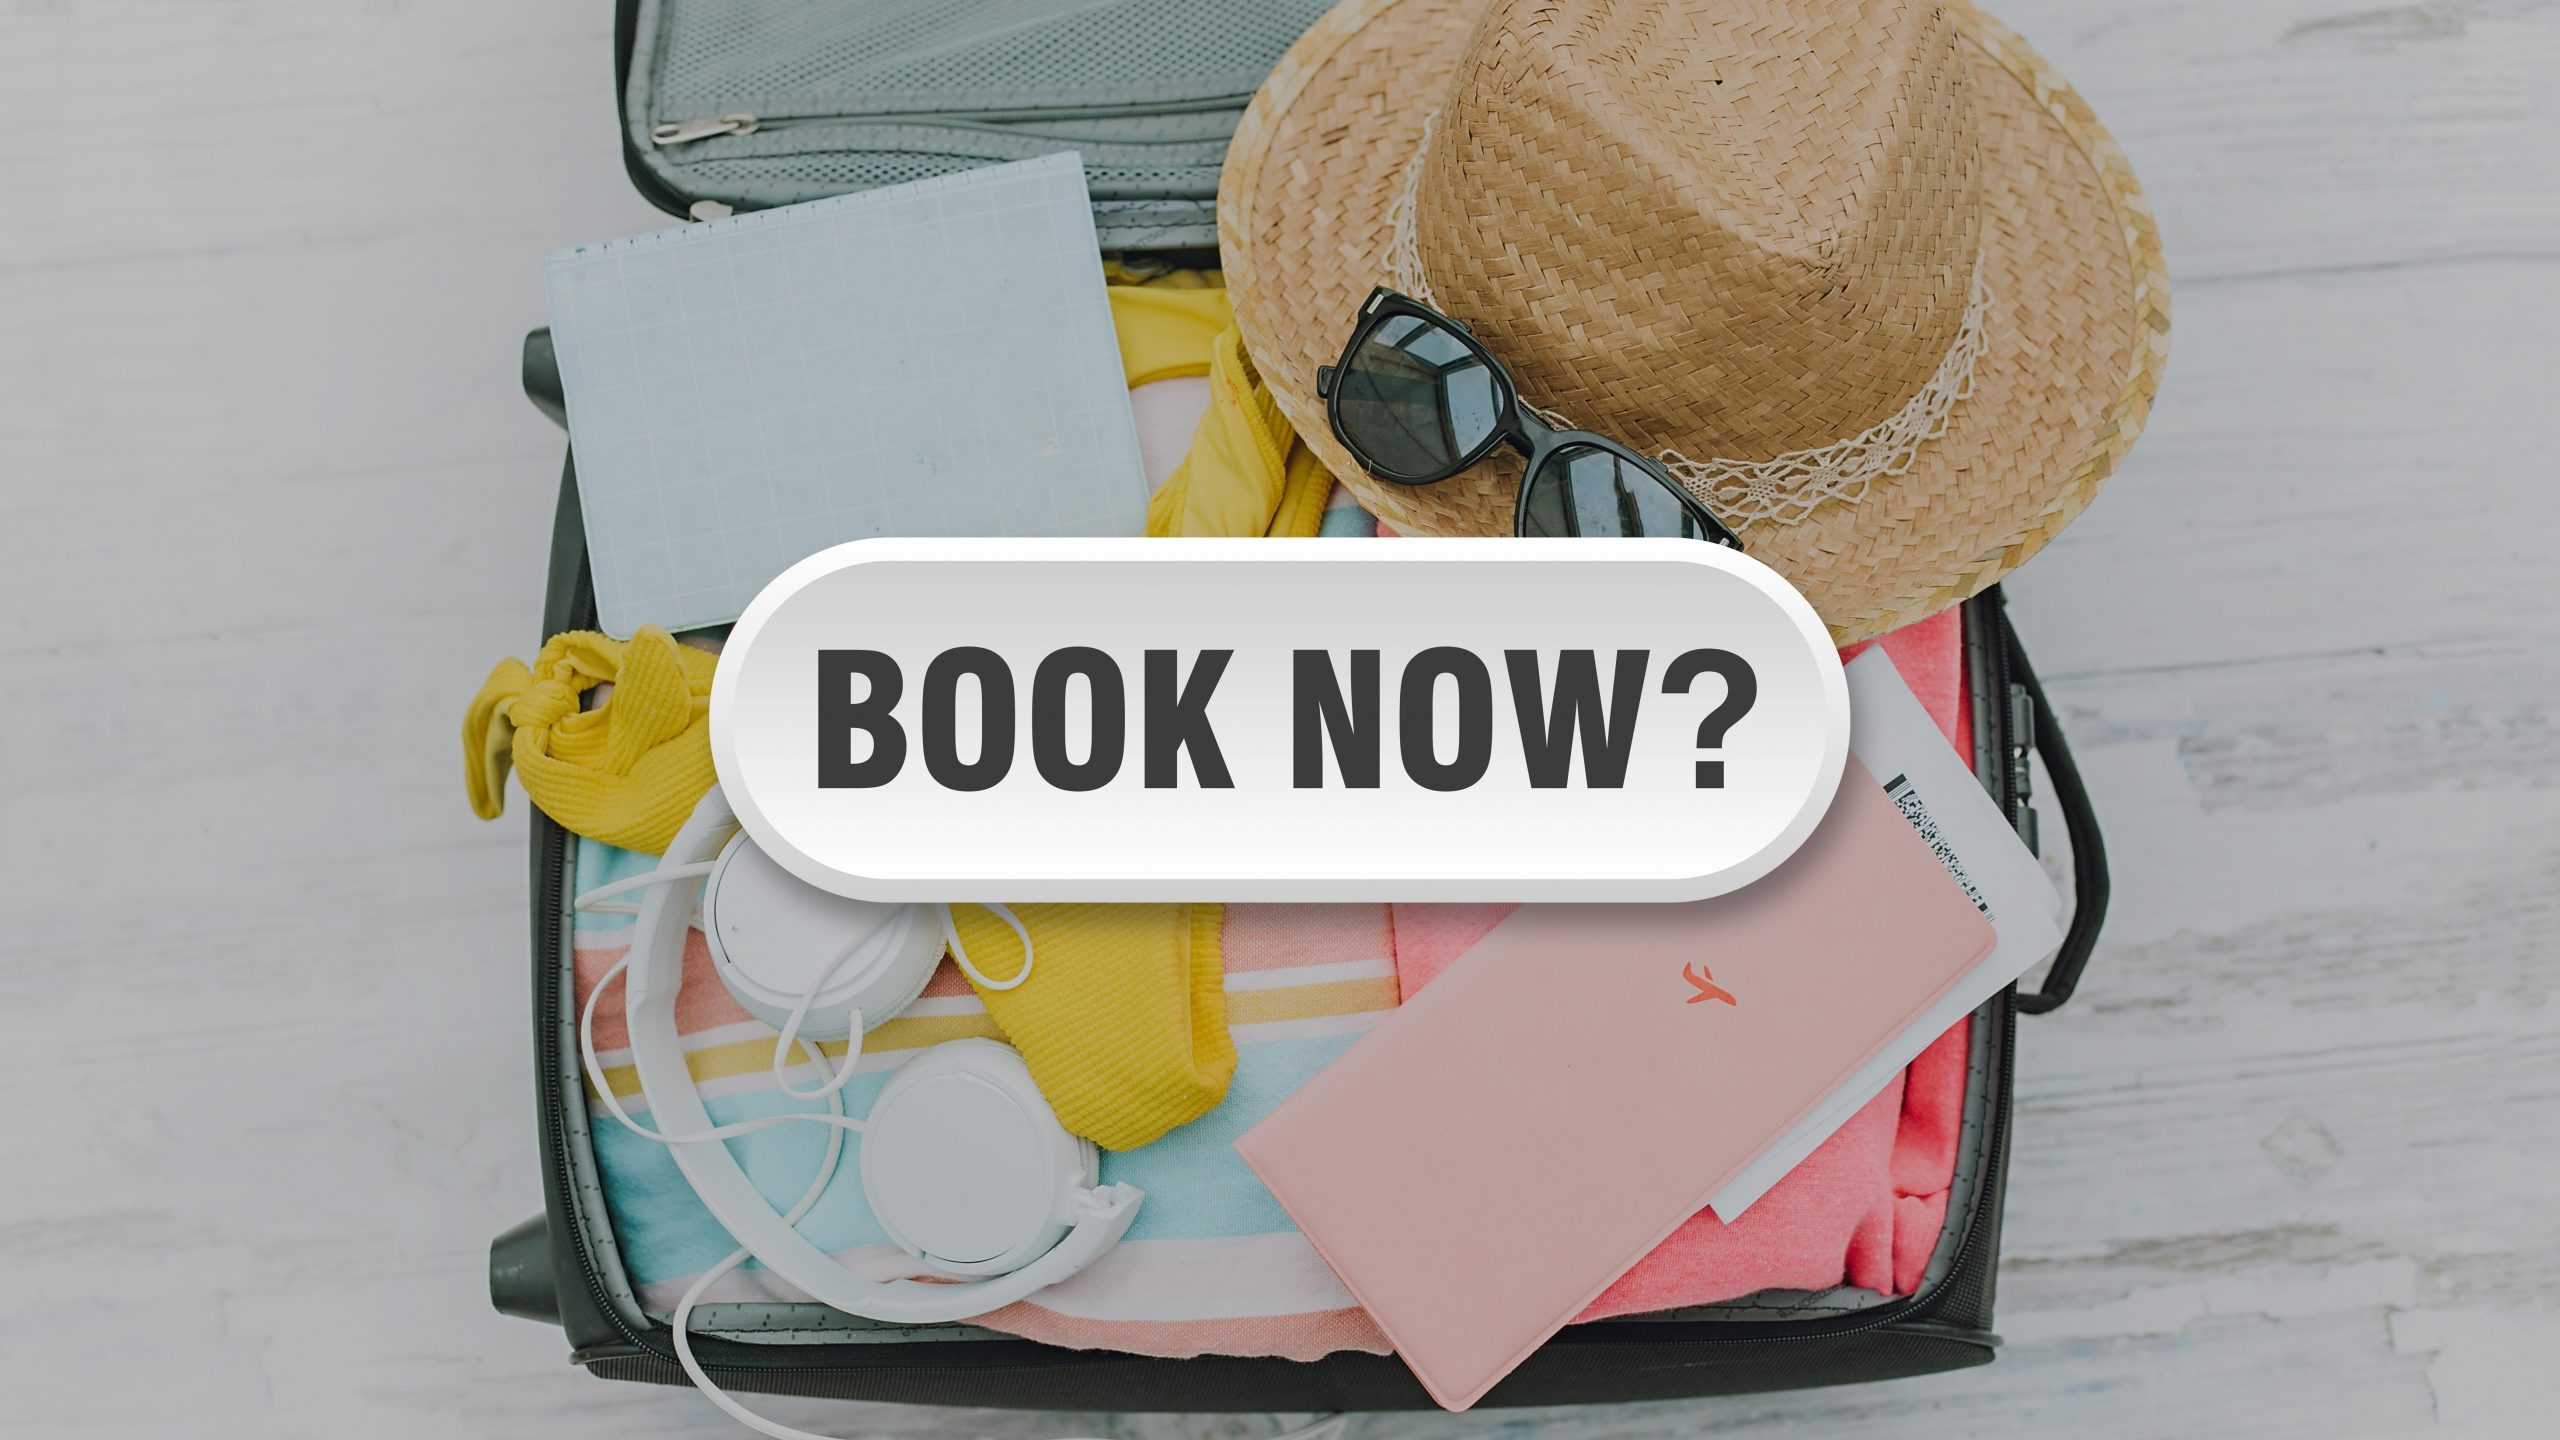 book now? button over packed suitcase background